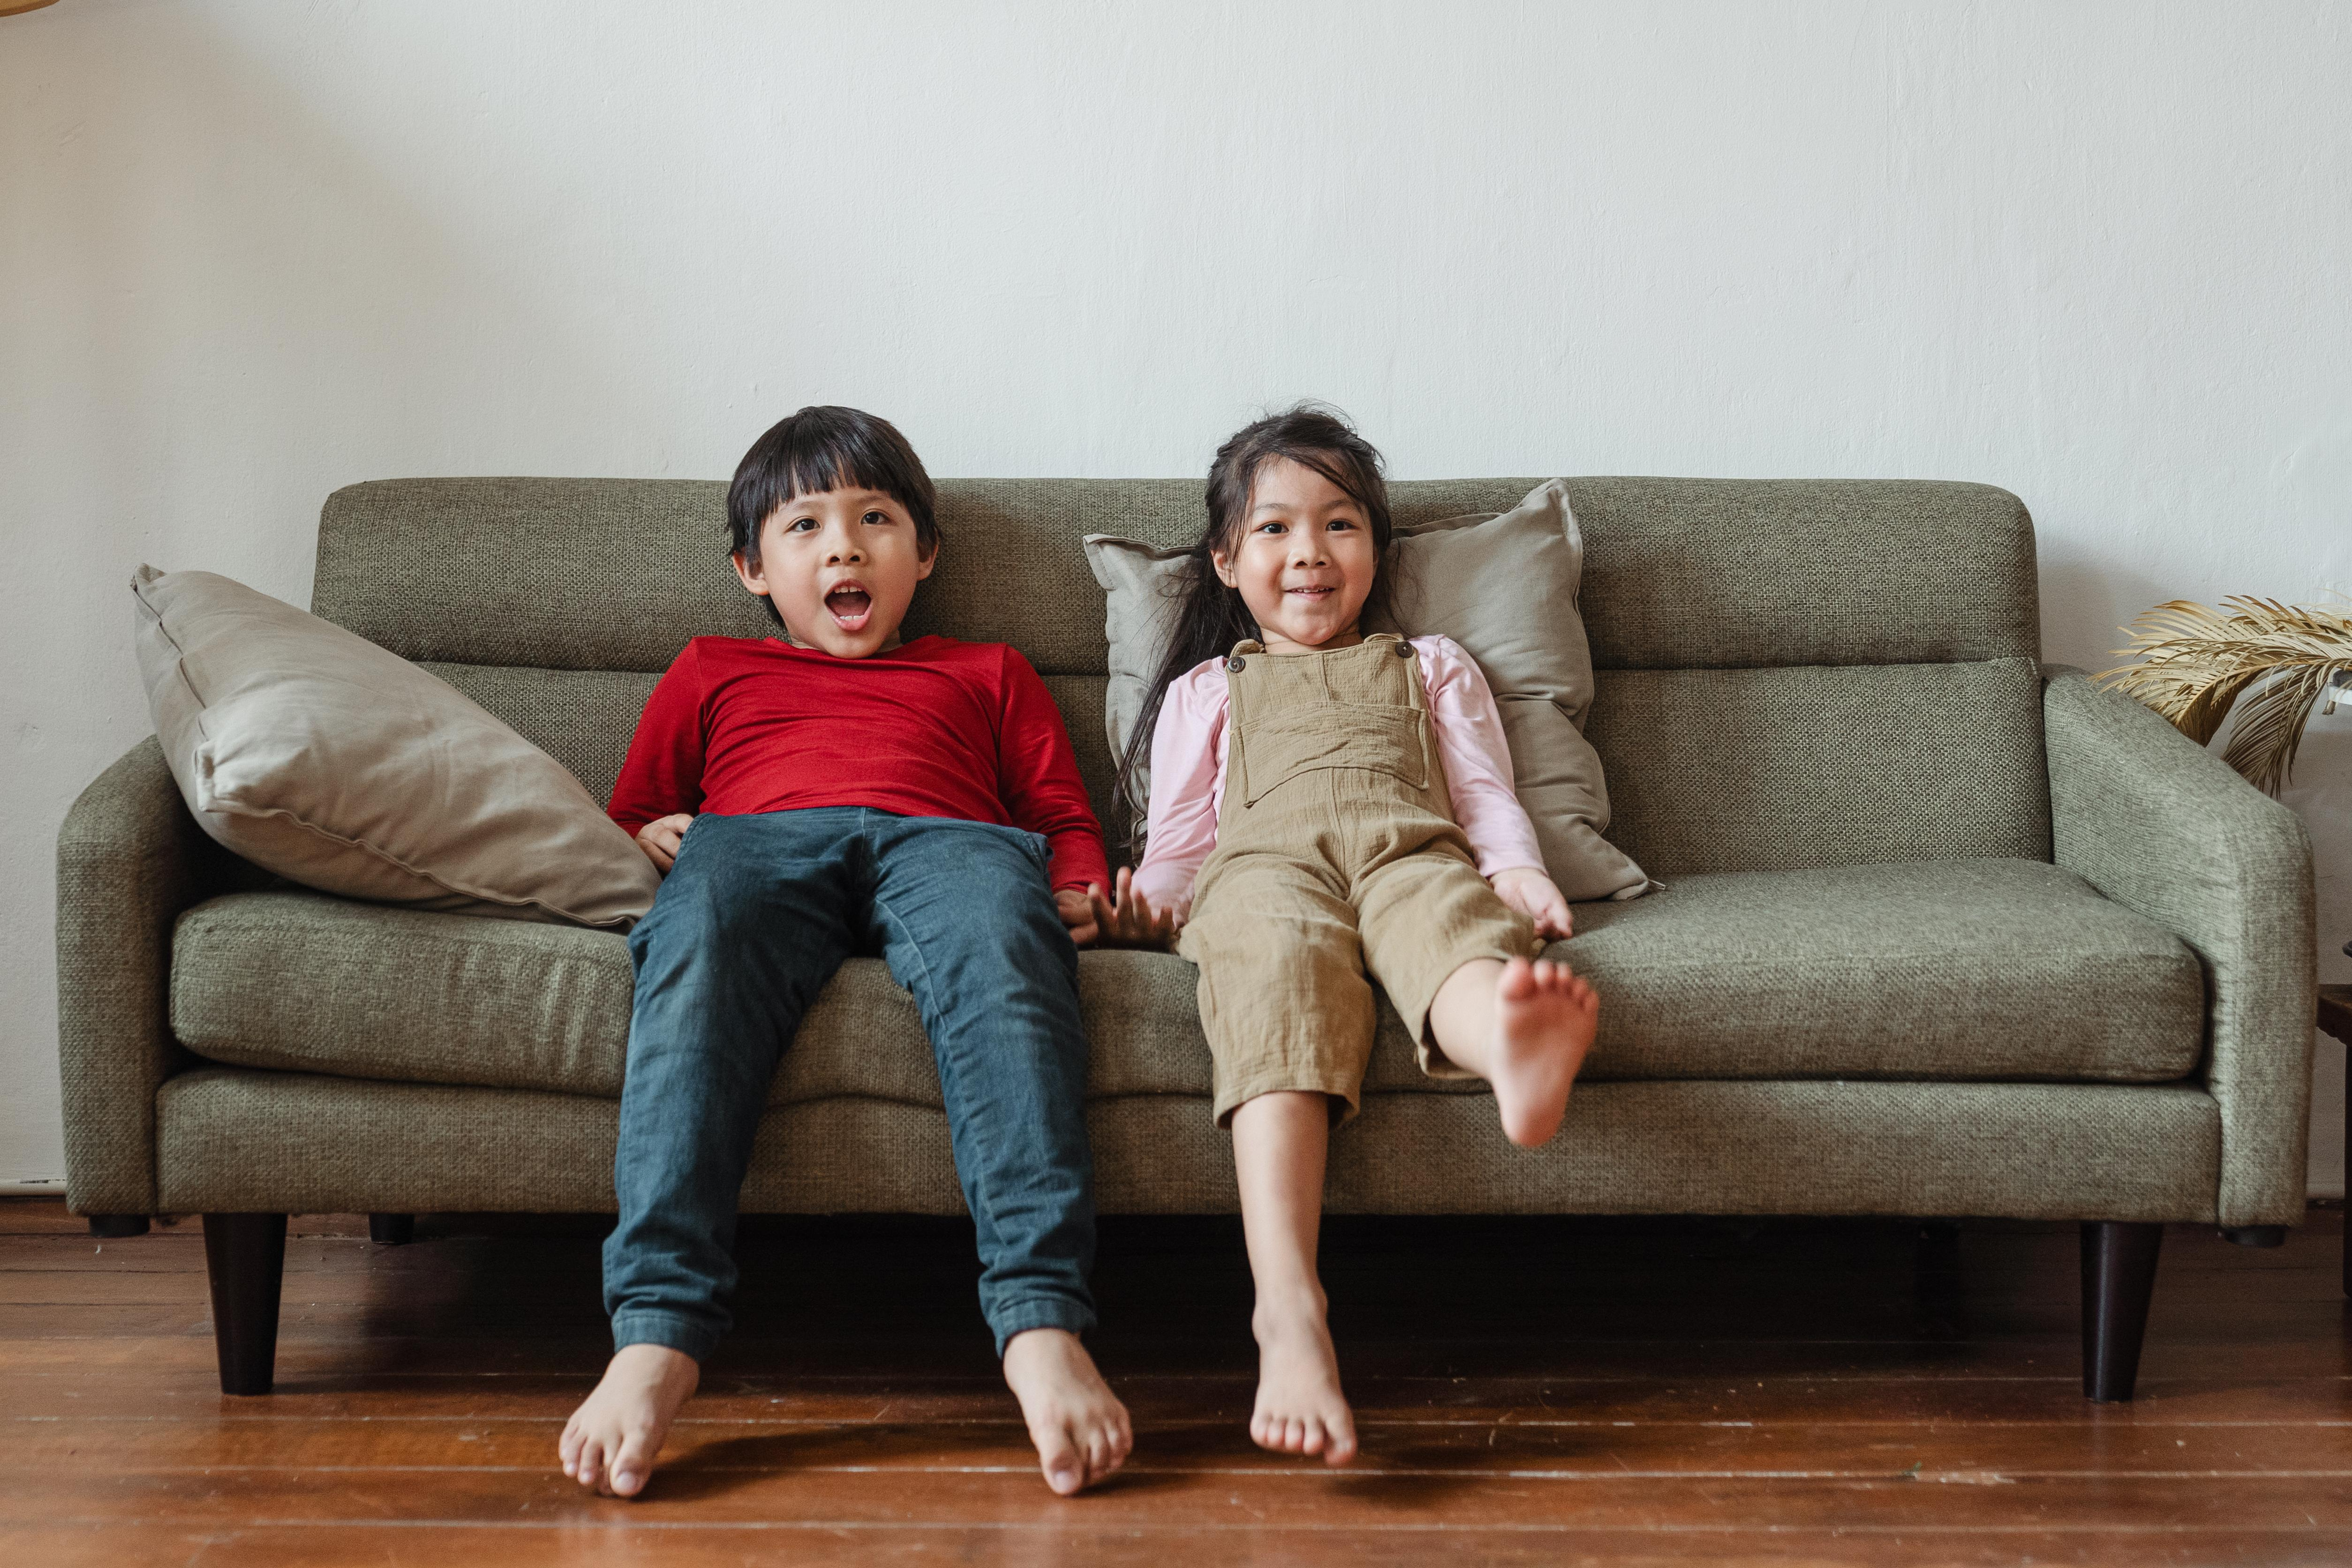 Two kids on a couch